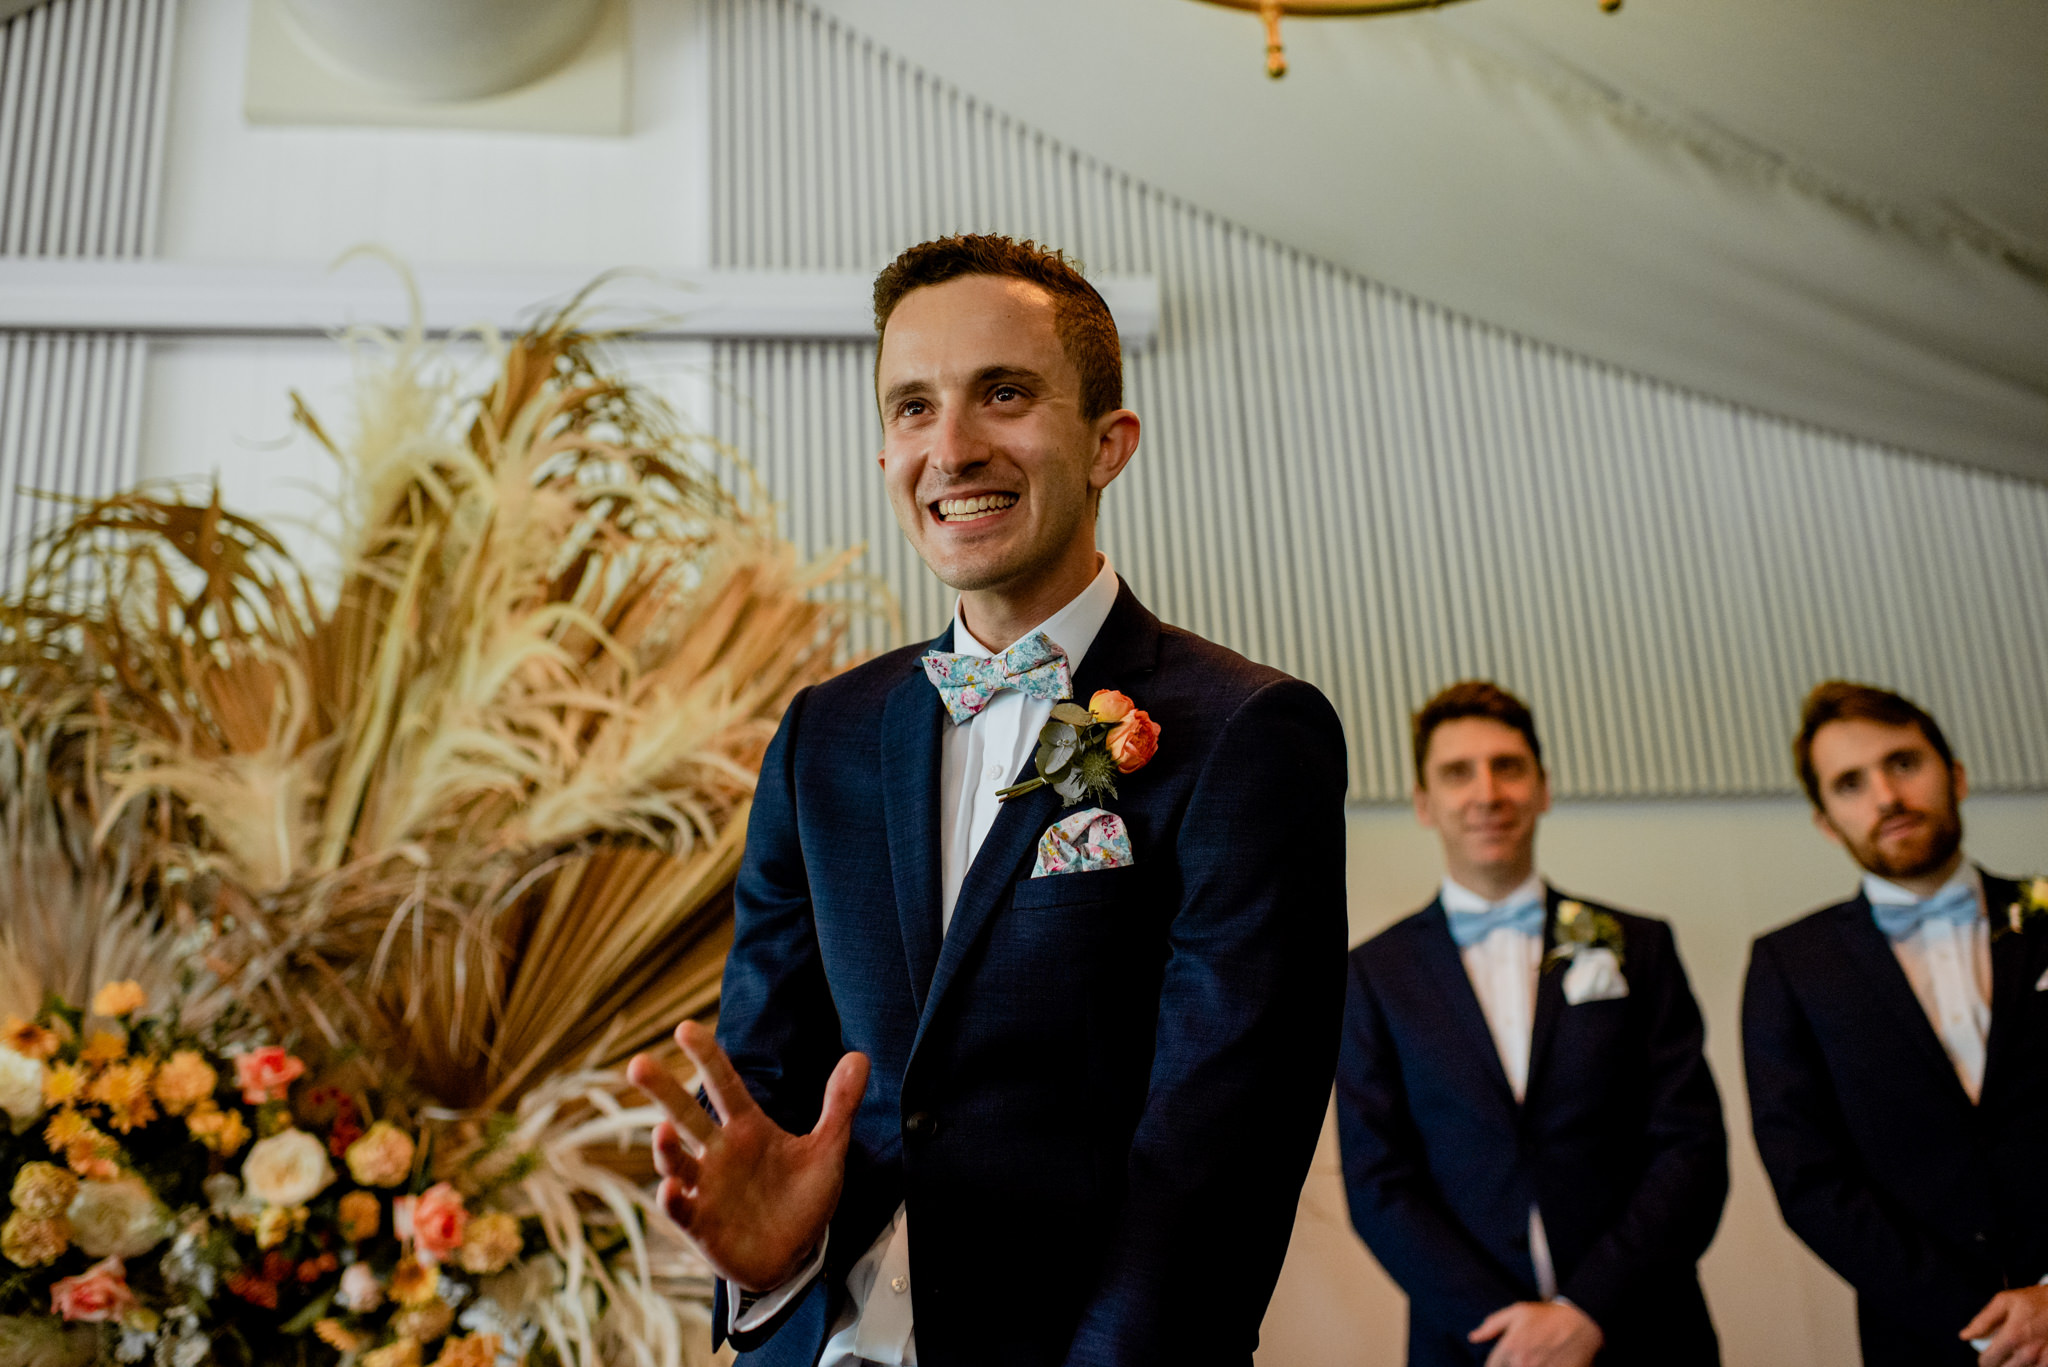 Groom smiles and waves during wedding ceremony